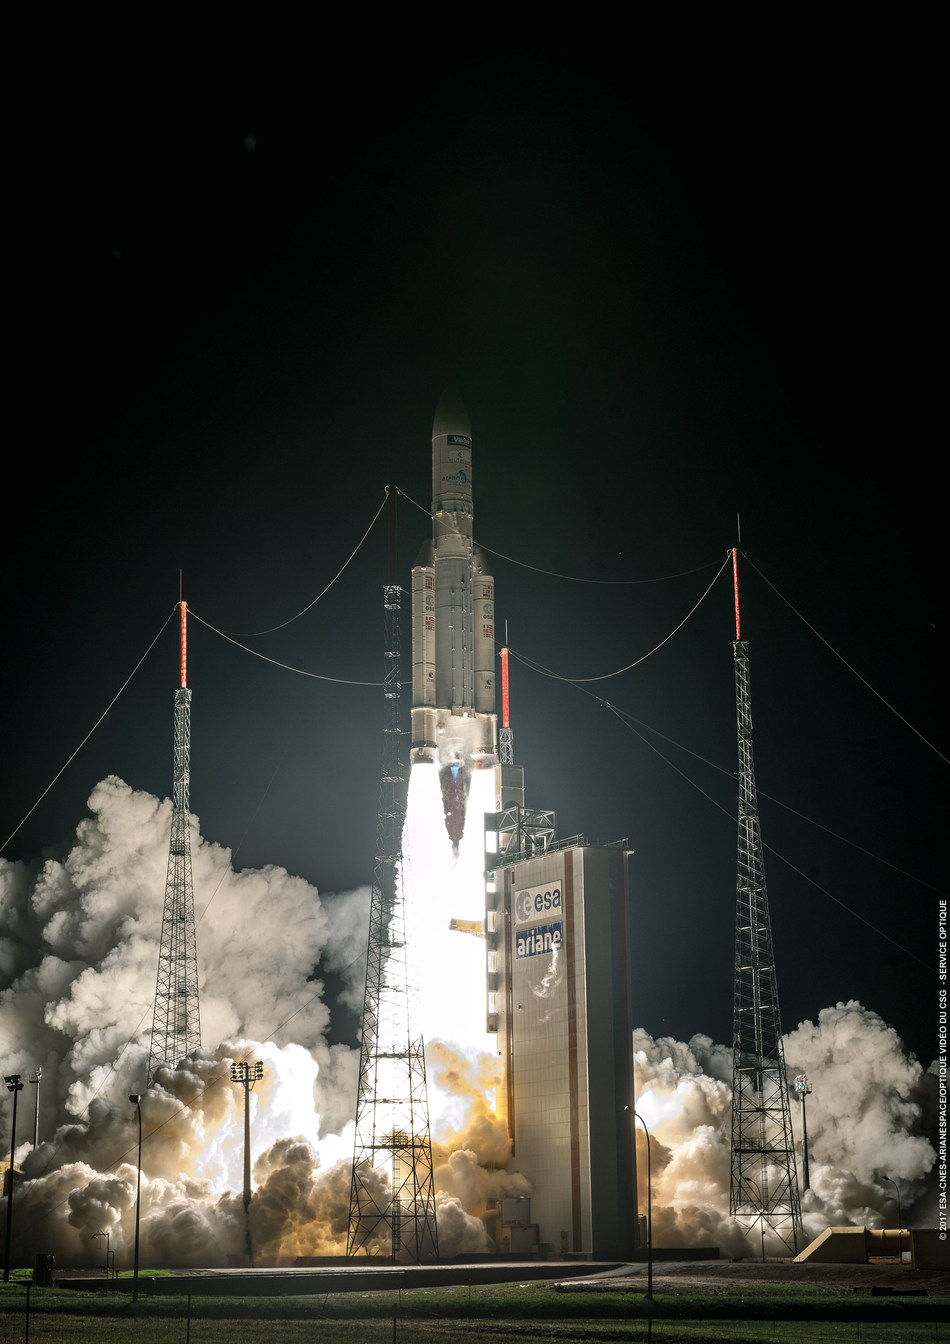 ViaSat Inc. announced the successful launch of its ViaSat-2 satellite aboard an Arianespace Ariane 5 ECA launch vehicle. The Ariane 5 ECA carrying ViaSat-2 lifted off yesterday, June 1 at 4:45 pm PDT from the Guiana Space Center, located in Kourou, French Guiana. (PRNewsfoto/ViaSat, Inc.)